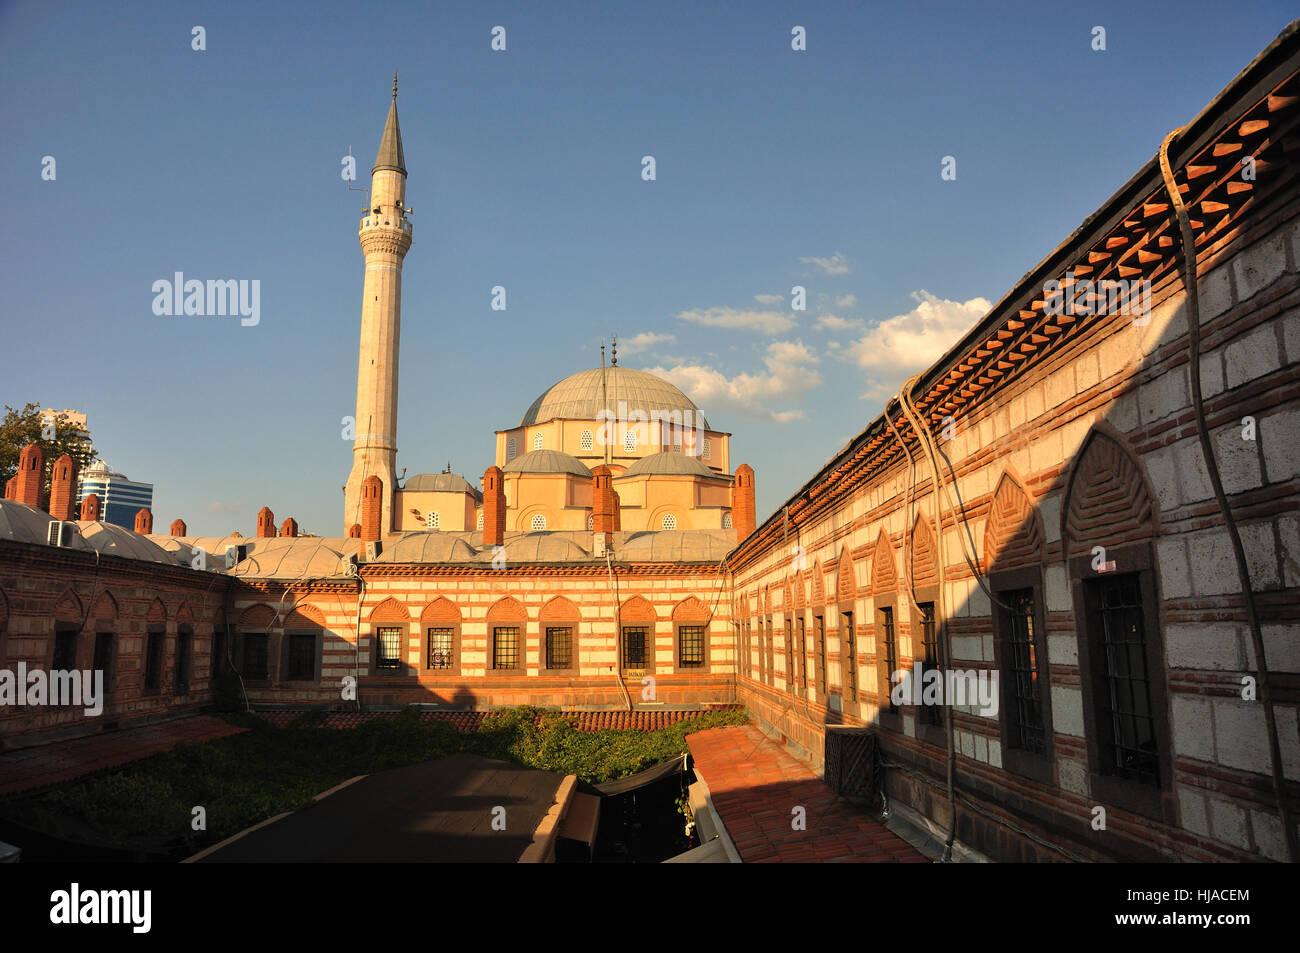 Hisar mosque izmir stock photos hisar mosque izmir stock images blue big large enormous extreme powerful imposing immense thecheapjerseys Images